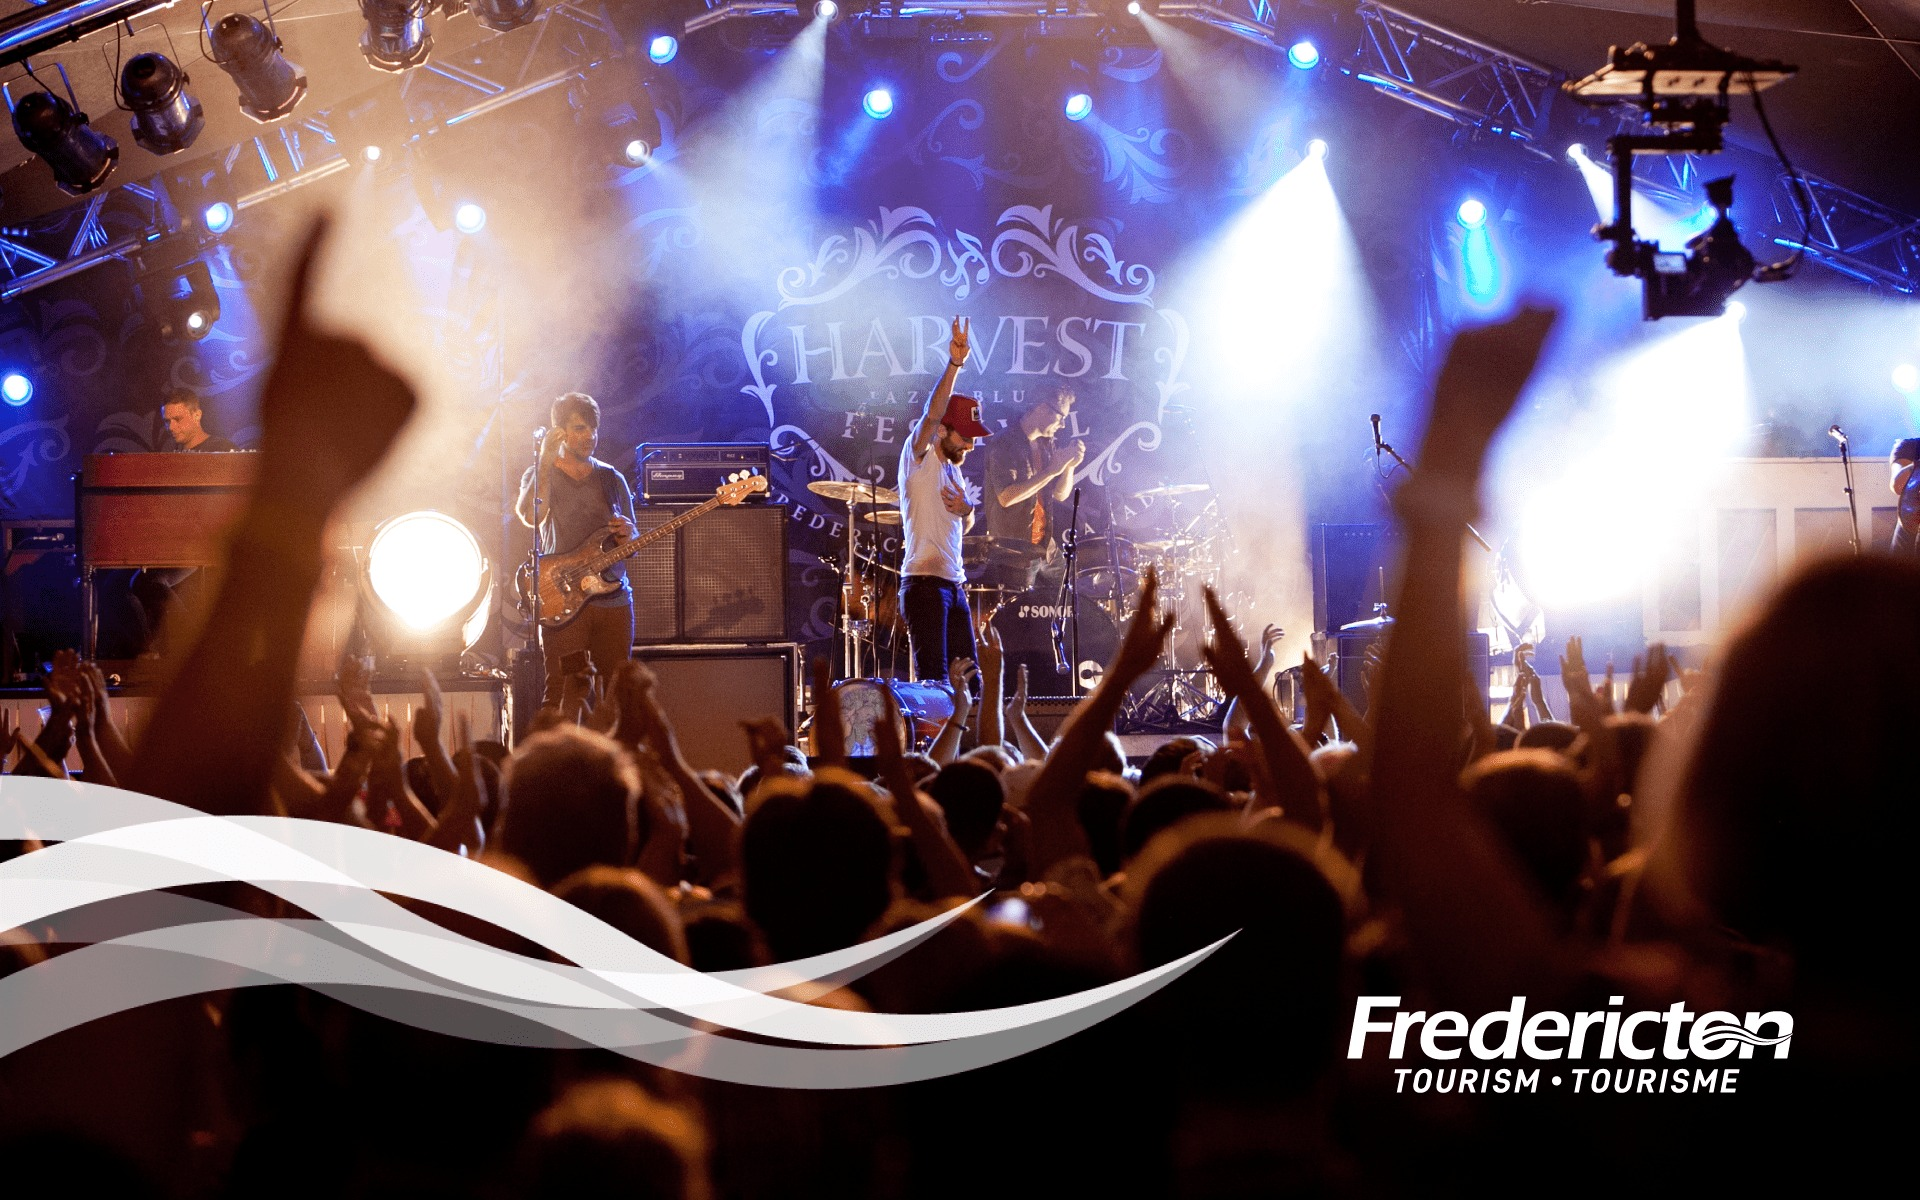 Fredericton Tourism concert Advertisement